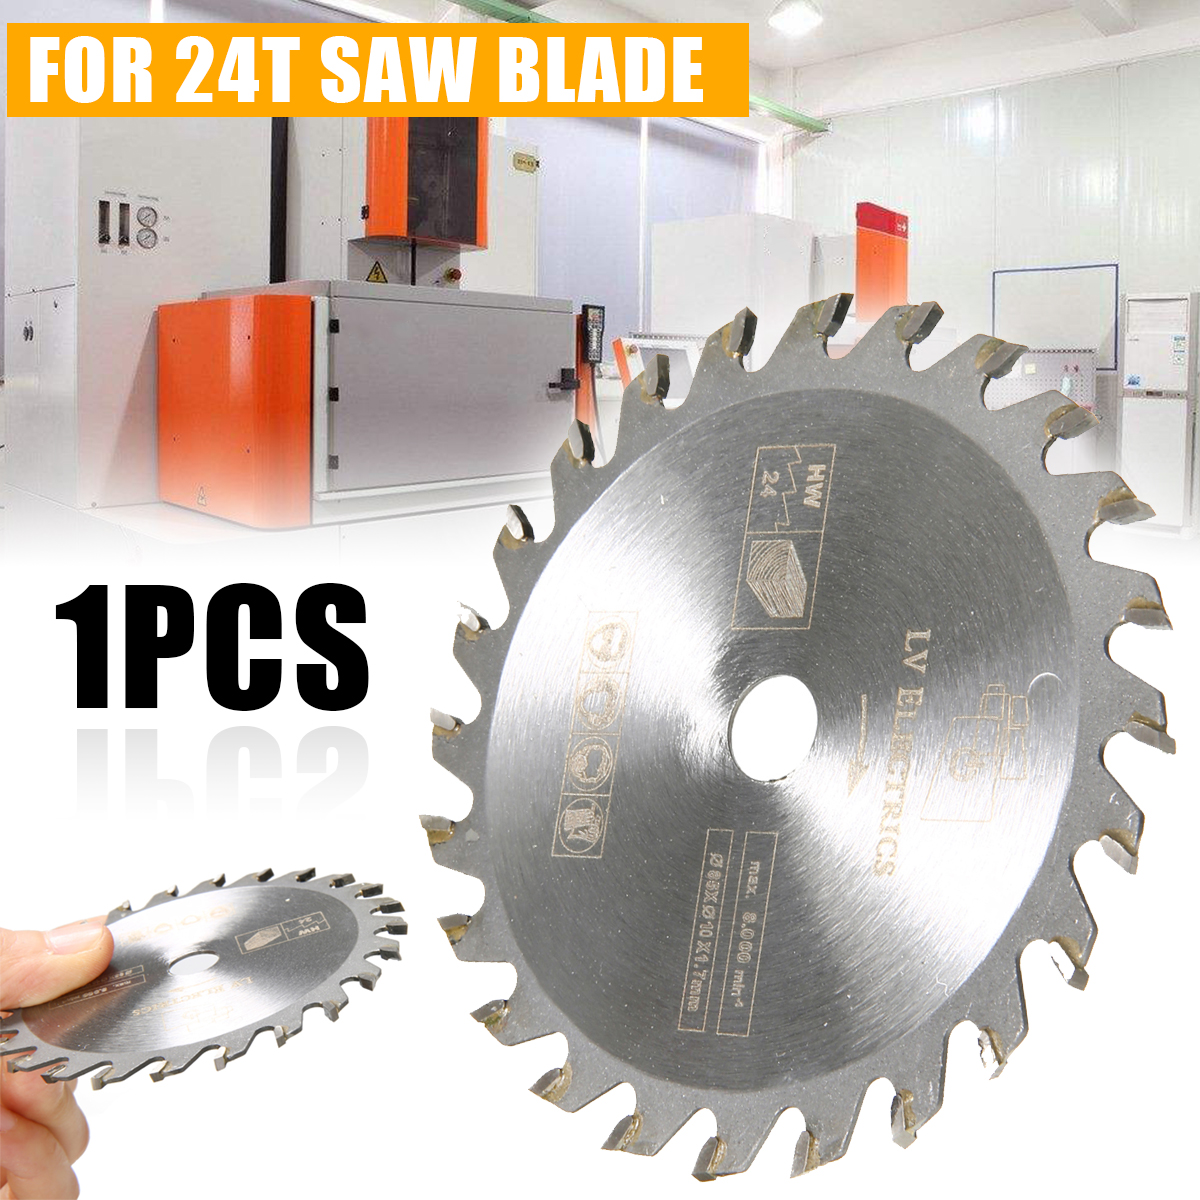 85mm 24T Circular Saw Blade High Quality Mini Wood Cutting Blade Carbide Tipped Cutting Disc  For Marble Granite General Wood